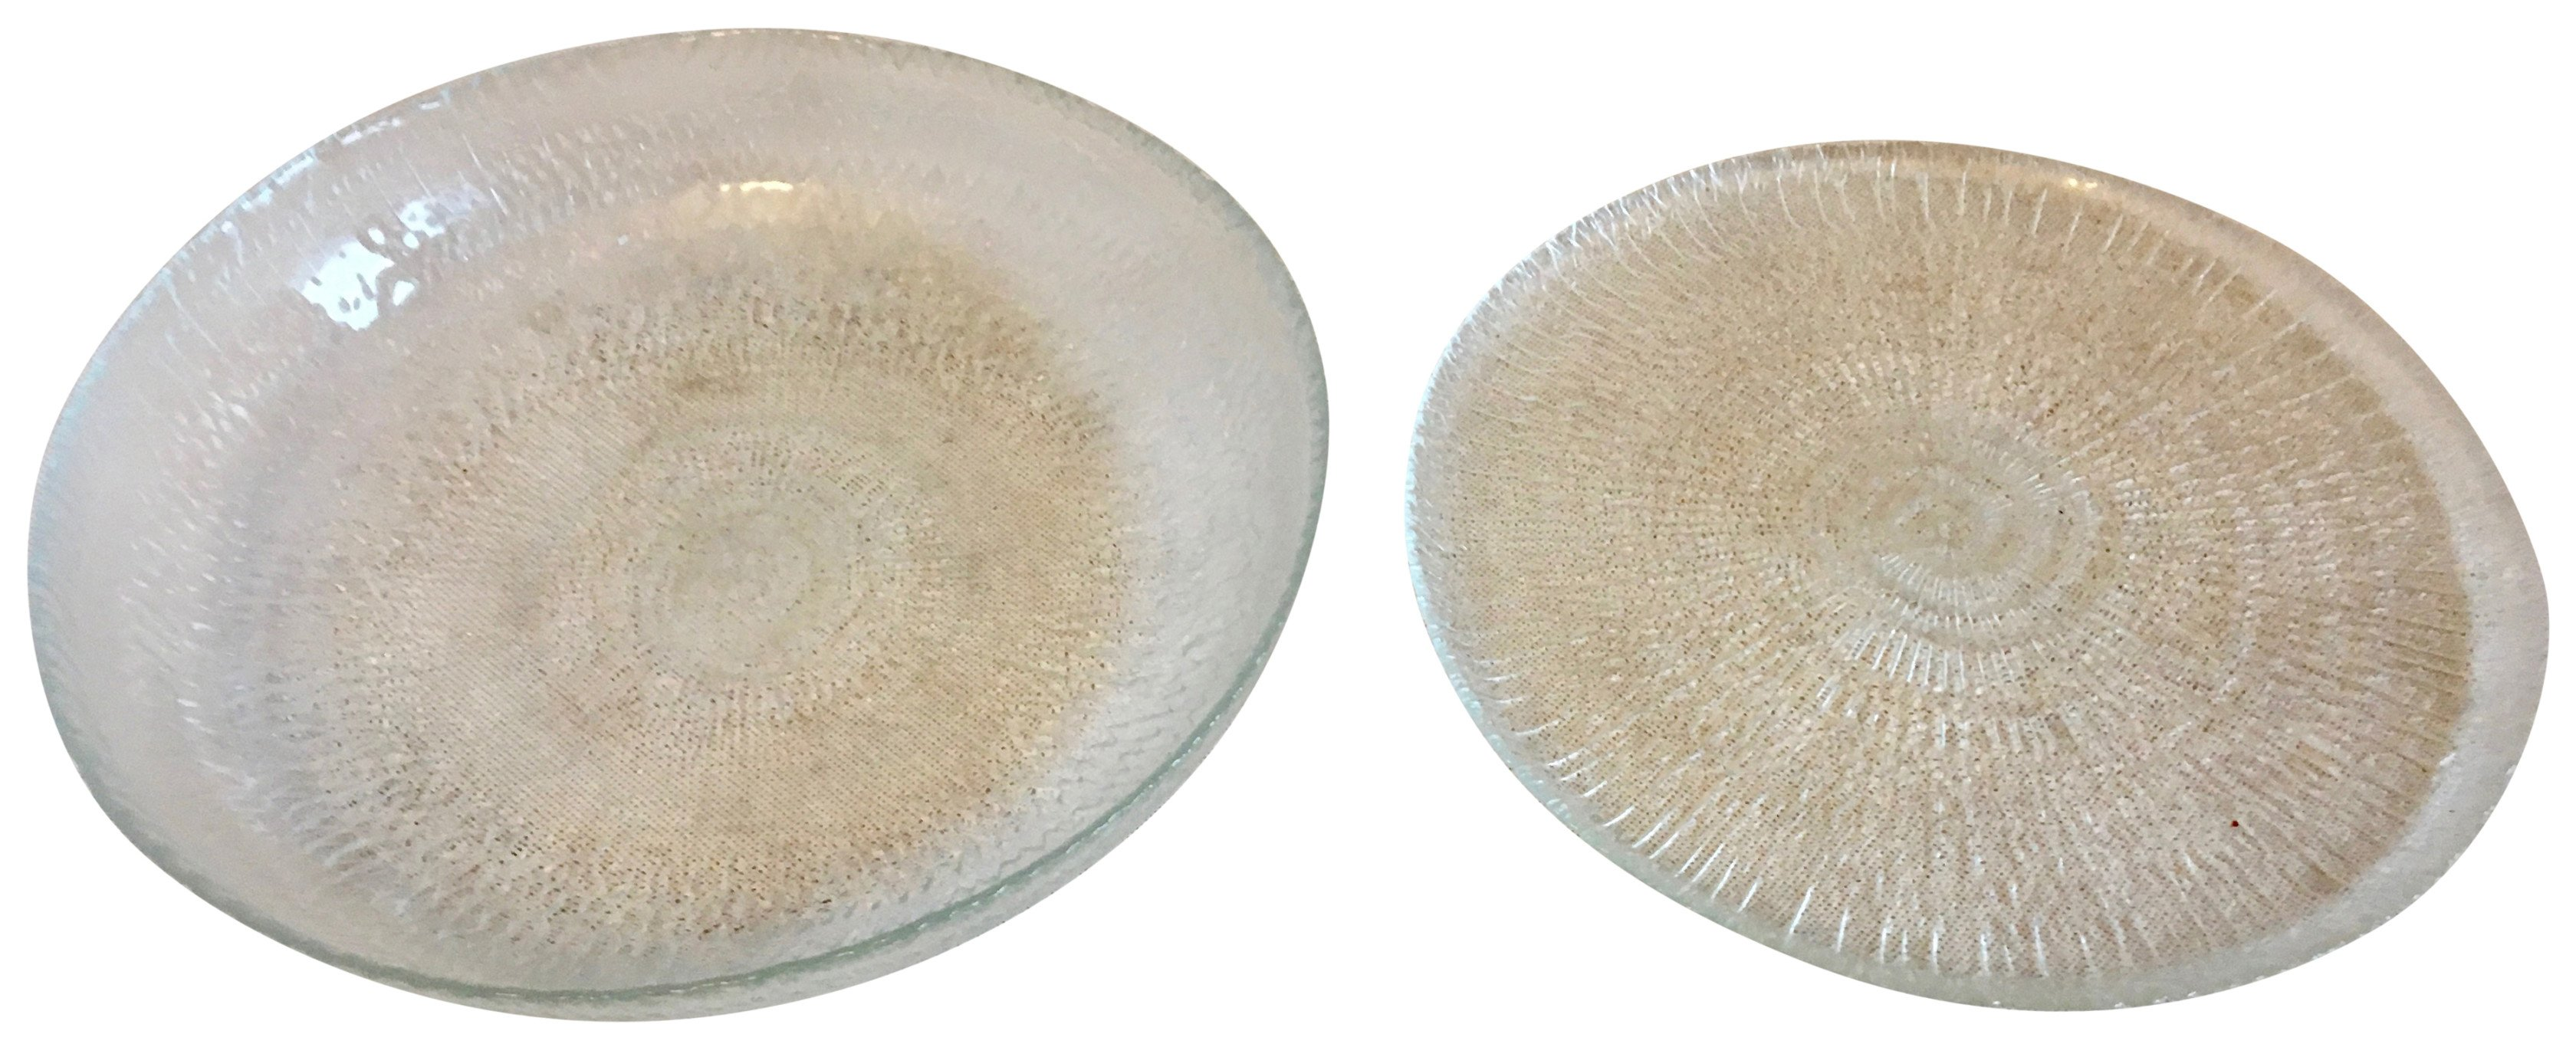 Pair of Pedestal Plates, Sklo Union, 1970s